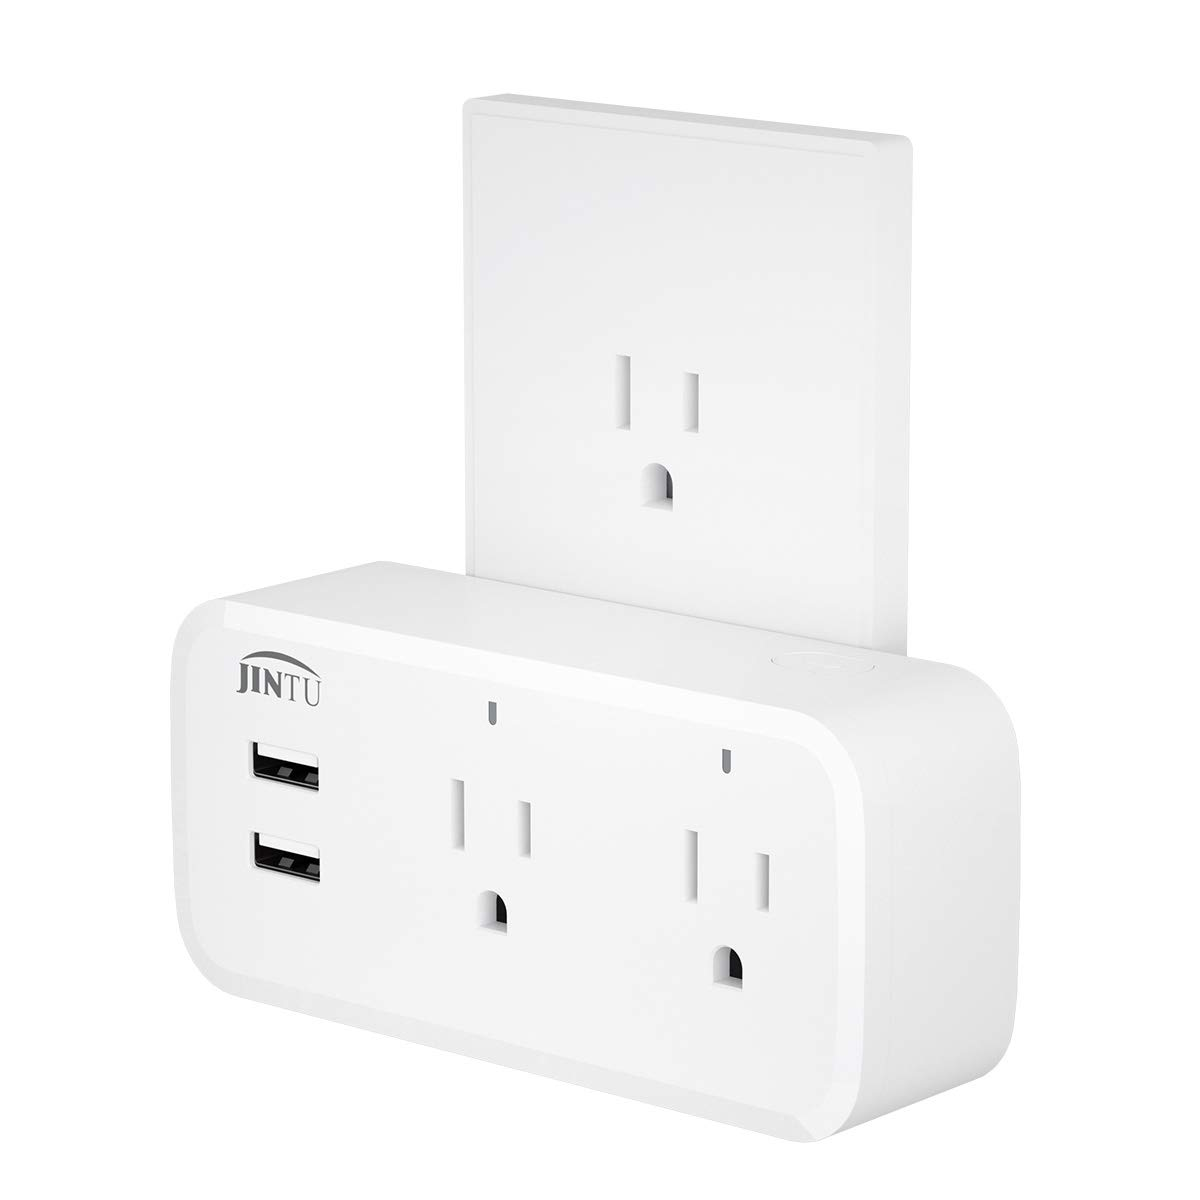 Smart Plug,Smart Outlet Home Wifi Dual Two USB Plug Compatible with Alexa, Google, IFTTT for Smartphone, Voice Control, Remote Control,No Hub Required,Overload Protection